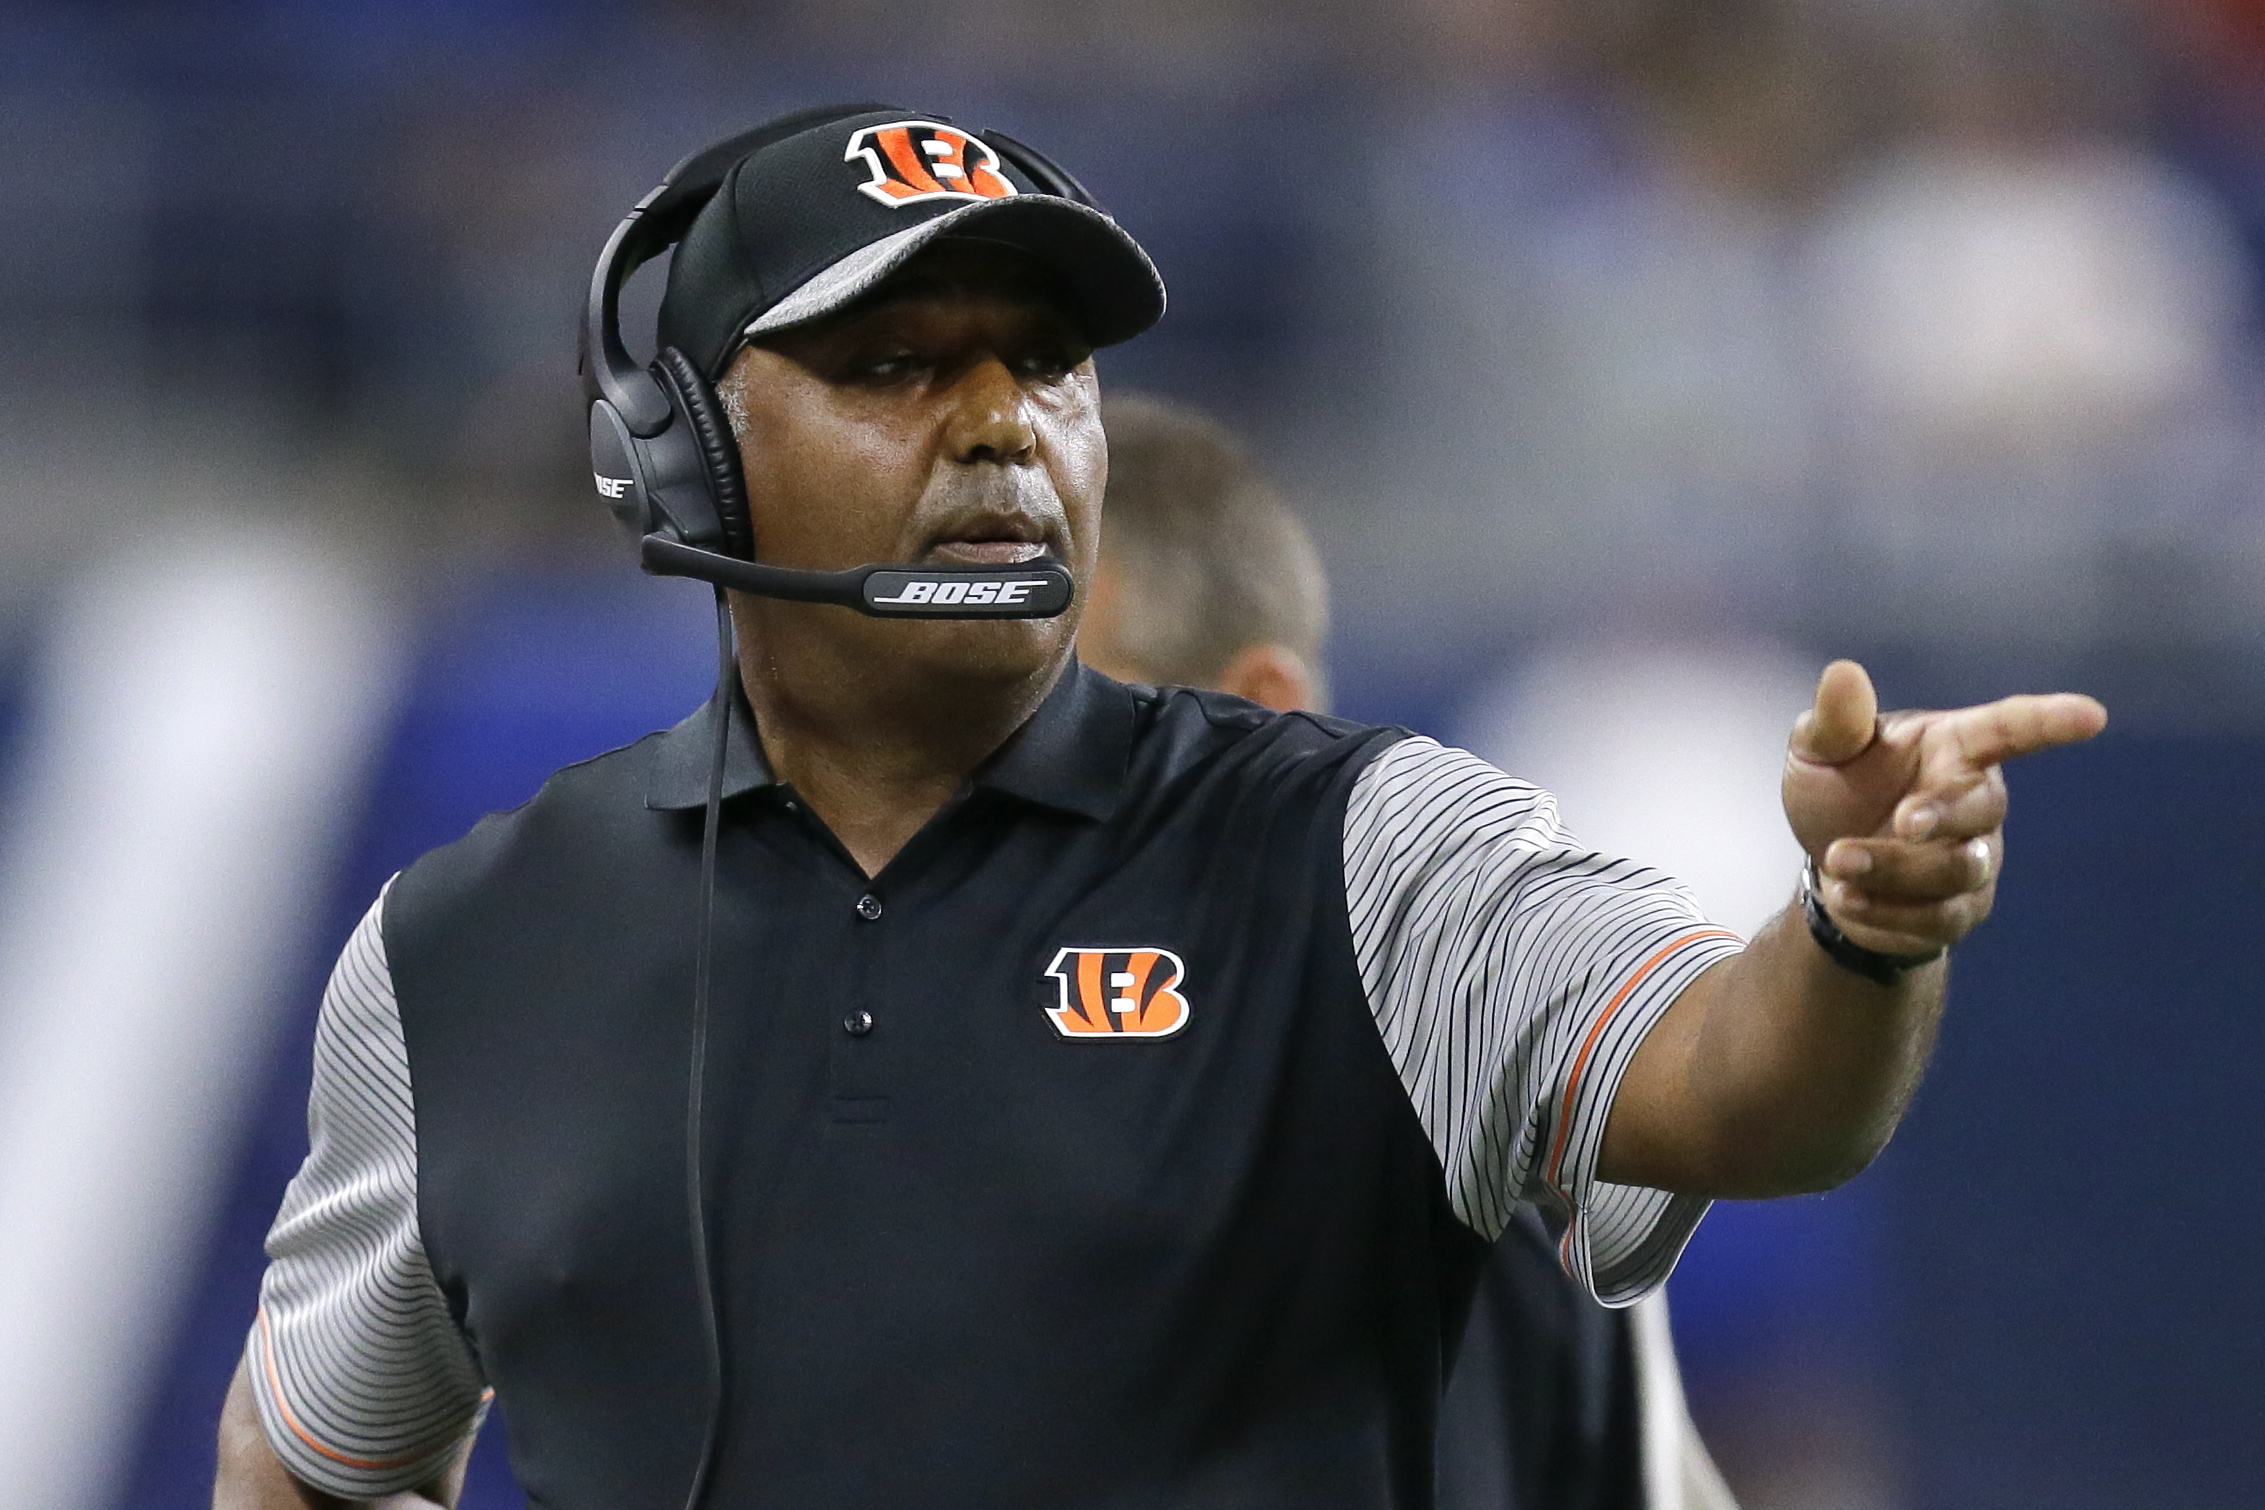 FILE - In this Aug. 18, 2016, file photo, Cincinnati Bengals head coach Marvin Lewis points in the first half of an NFL preseason football game against the Detroit Lions in Detroit. The Bengals are right up there among the NFLs elite when it comes to reac